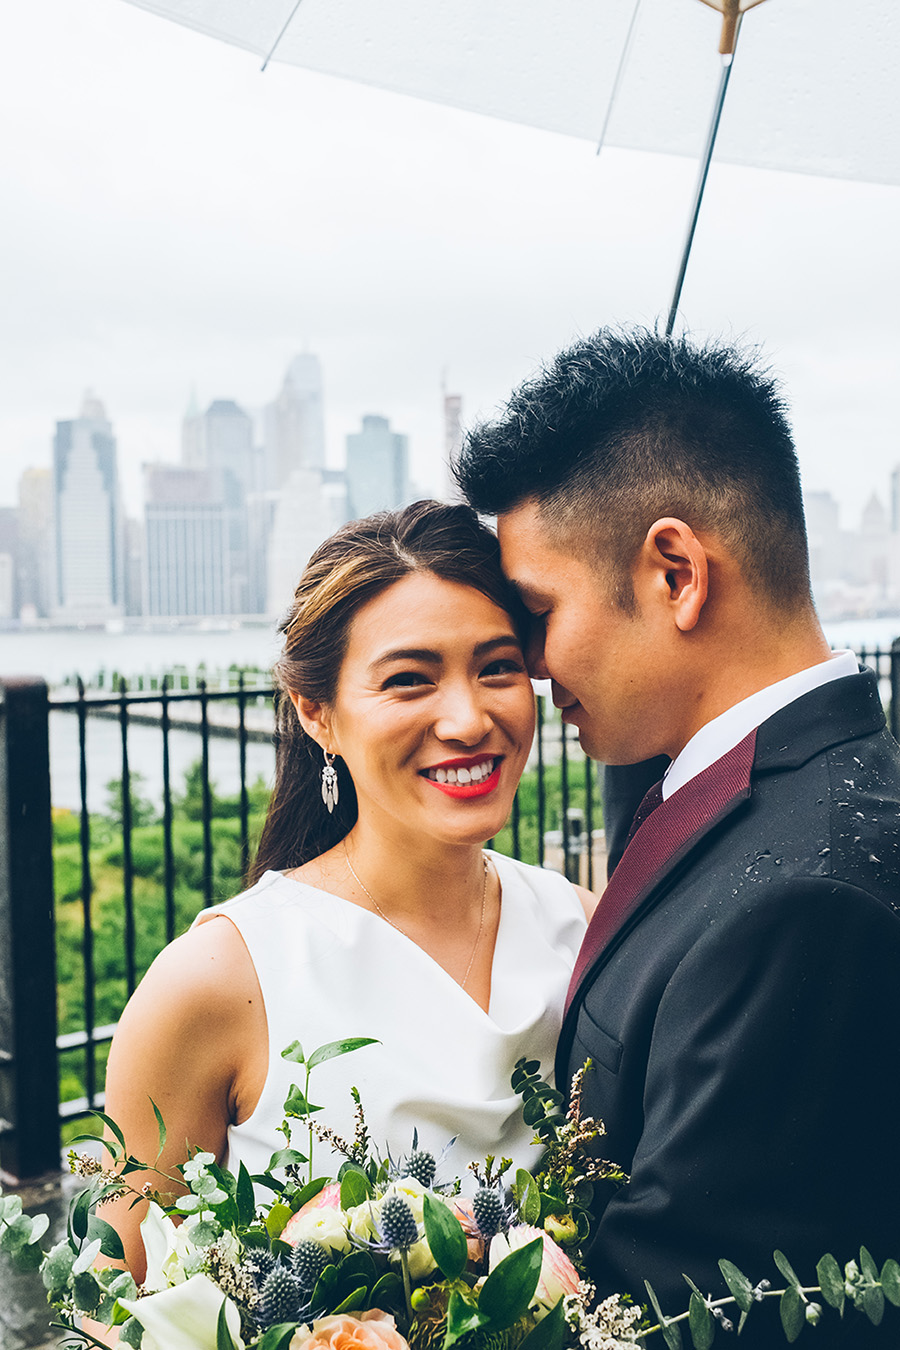 NEW-YORK-CITY-WEDDING-PHOTOGRAPHER-INTIMATE-WEDDING-ELOPEMENT-BROOKLYN-PROMENADE-CITYHALL-MANHATTAN-BROOKLYN-WEDDING-PHOTOGRAPHY-JackieAaron-0031.jpg